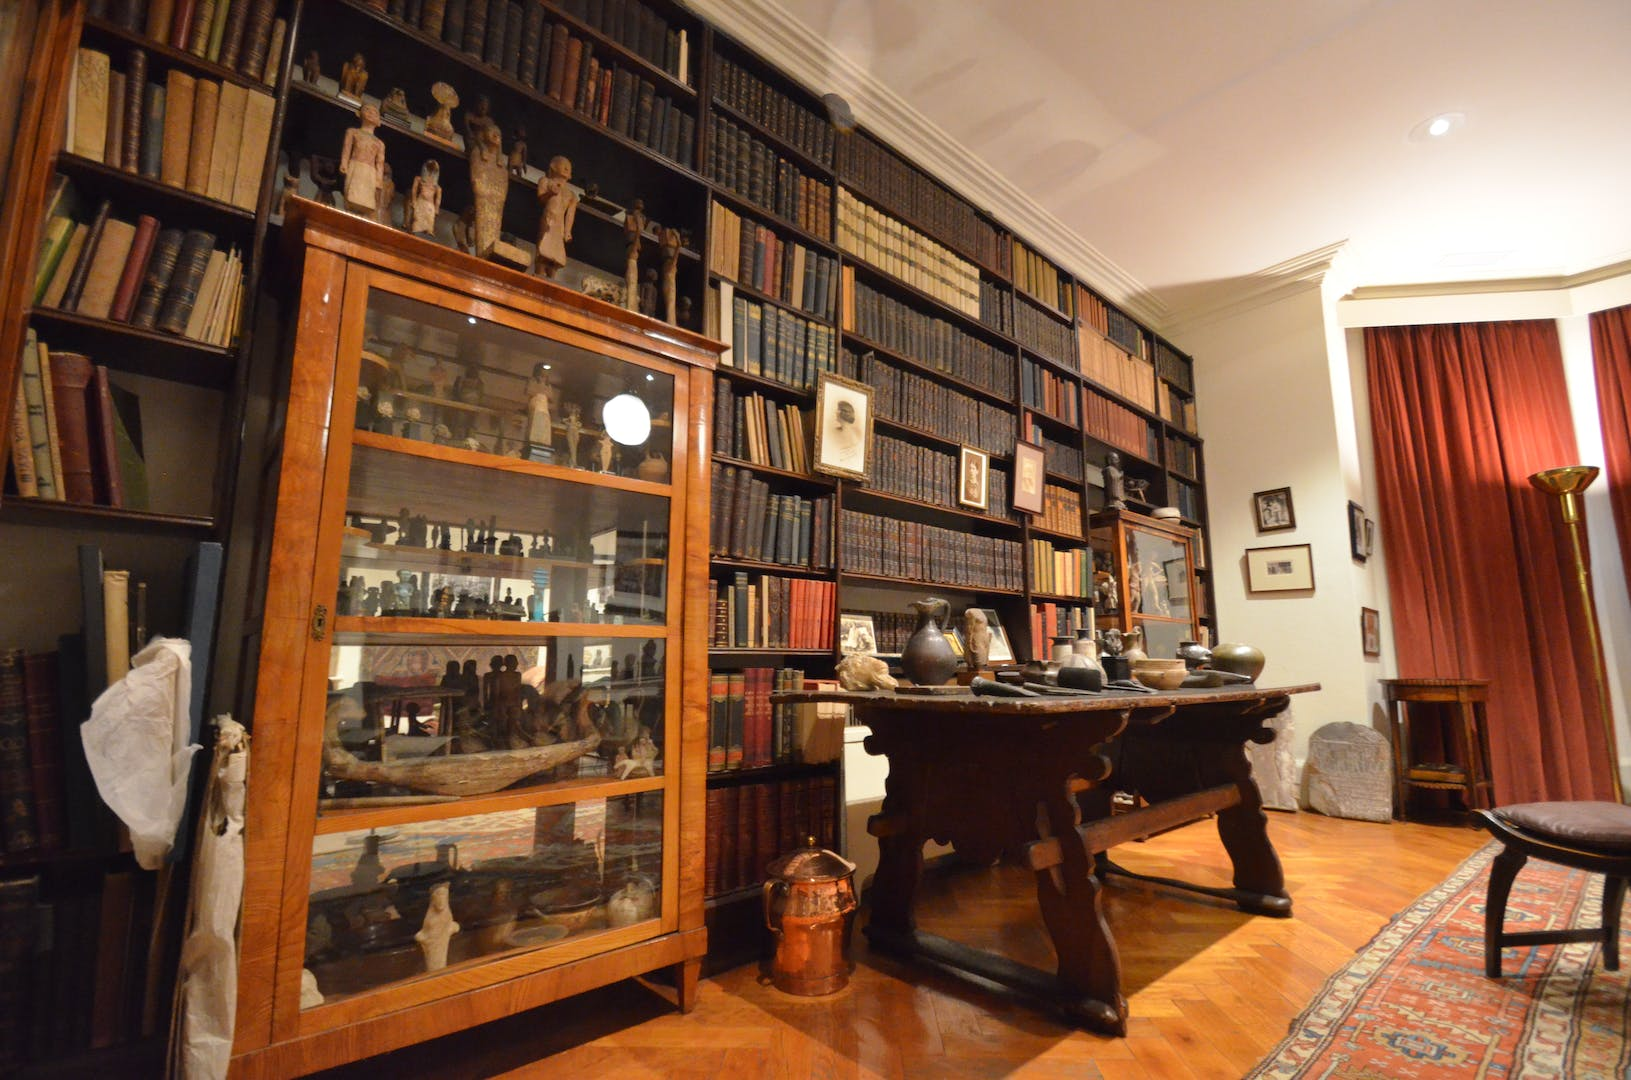 Image result for freud museum london images